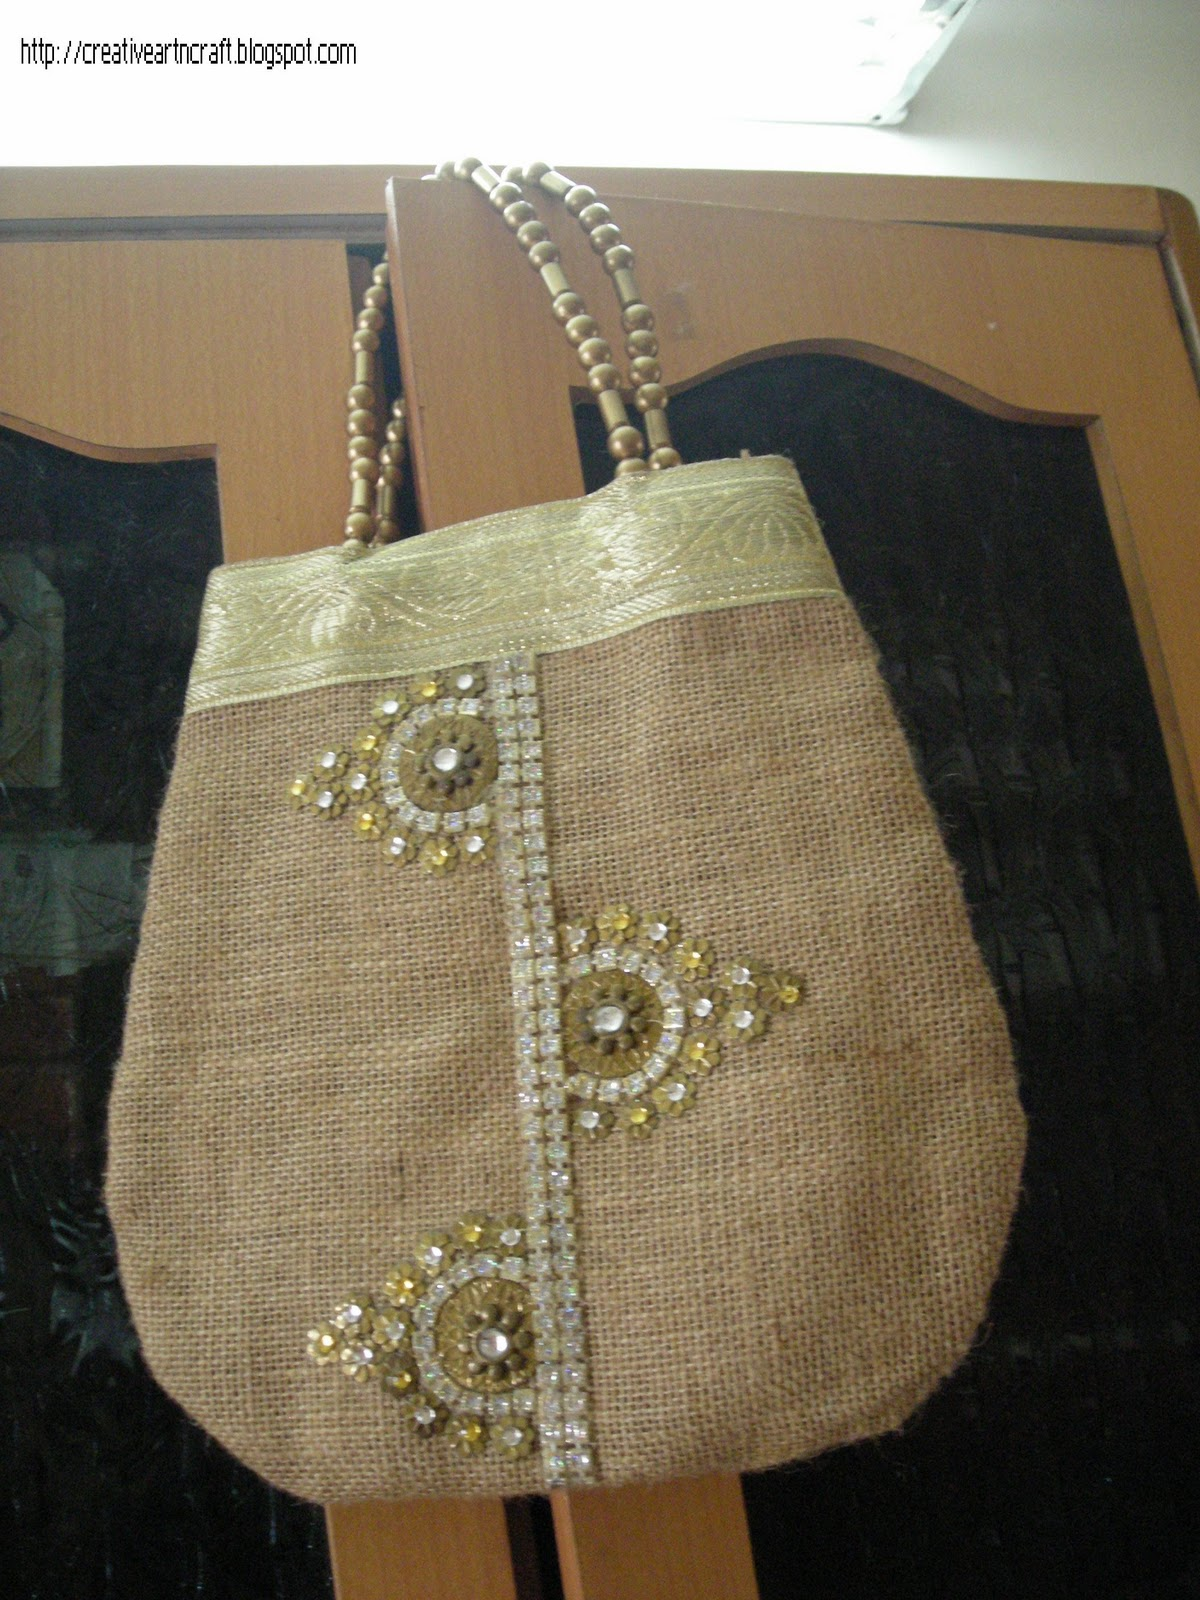 Anu S Art And Crafts Jute Bag